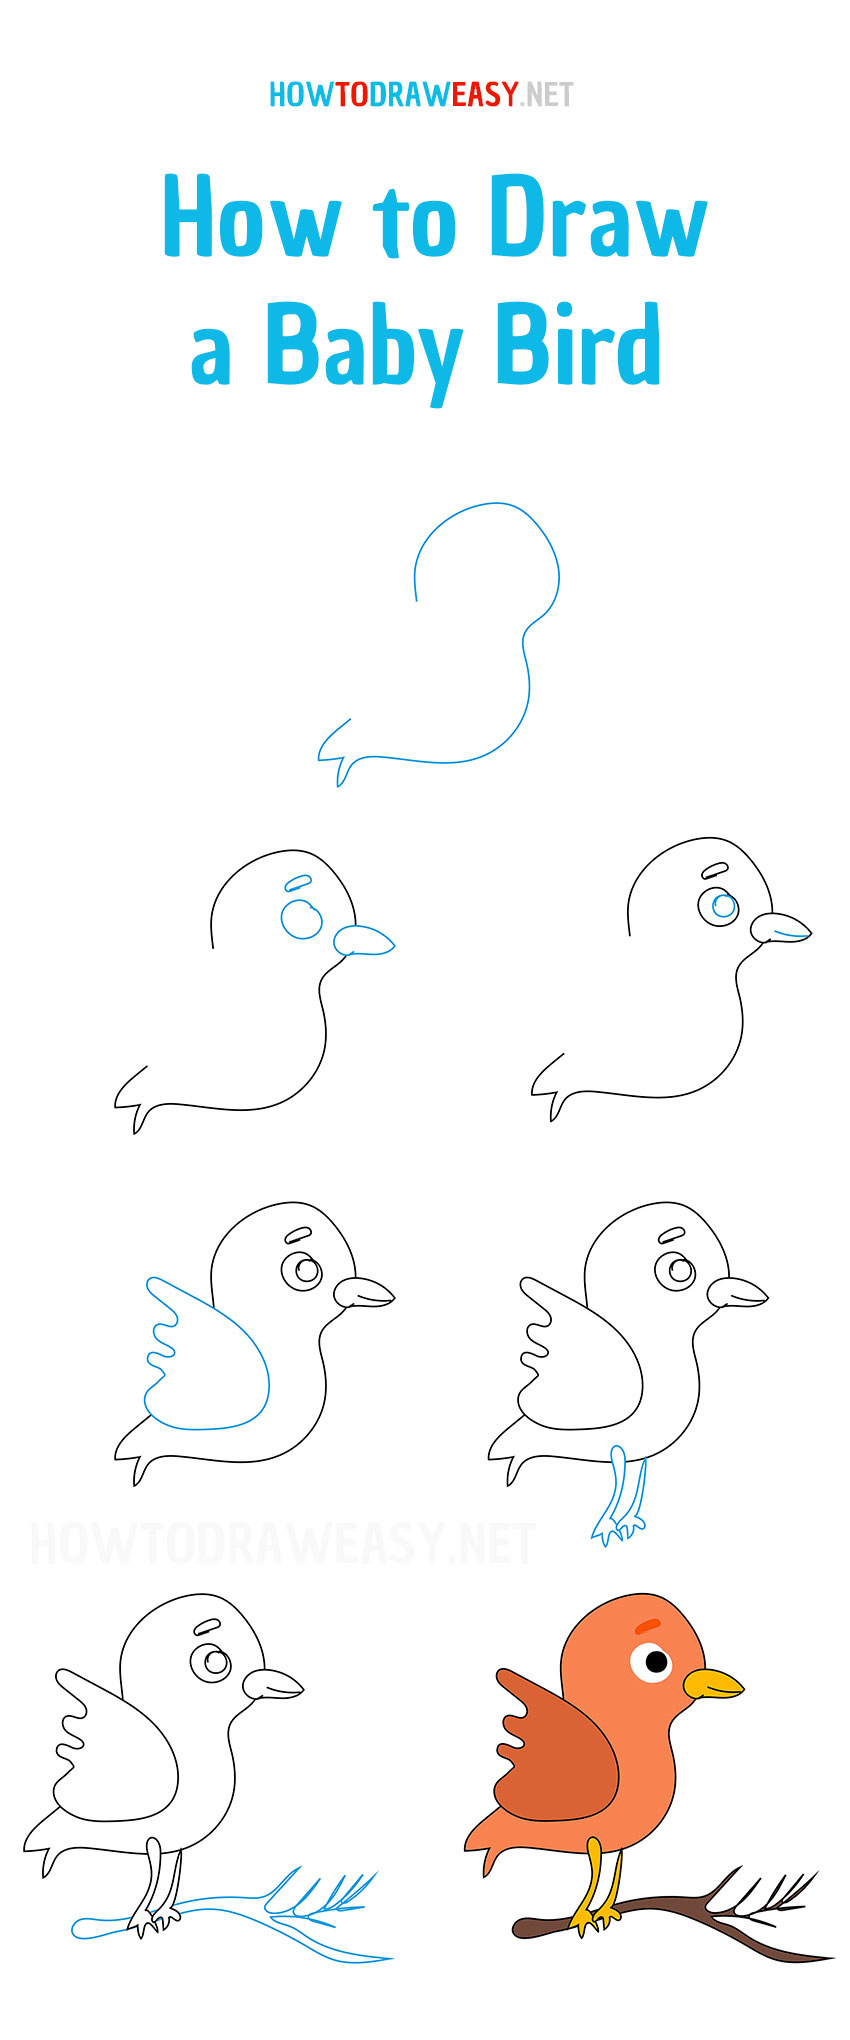 how-to-draw-a-baby-bird-easy